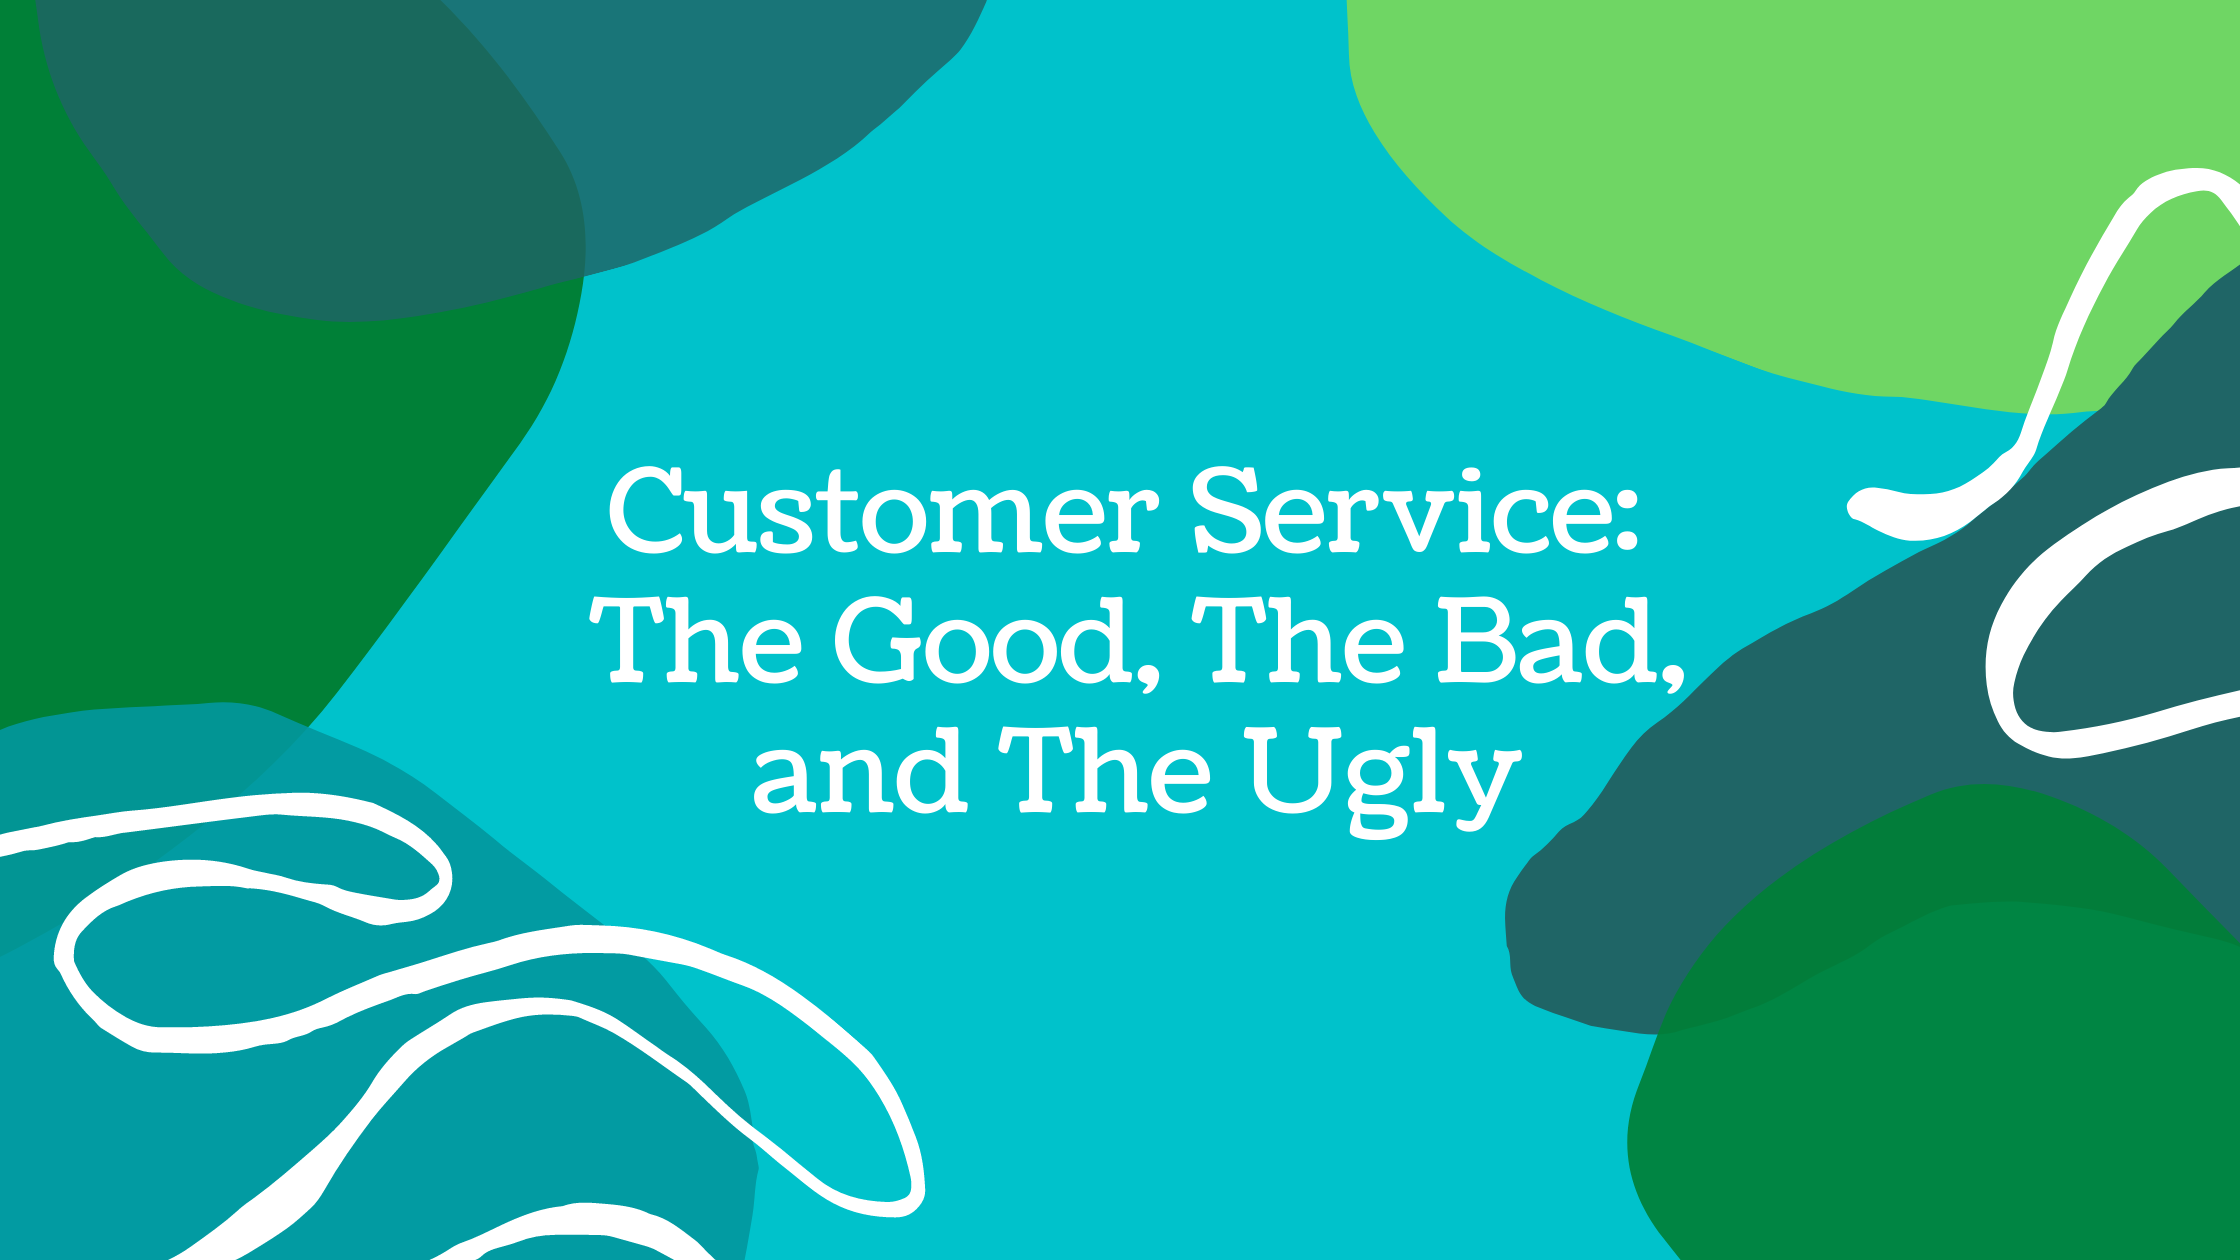 Customer Service: The Good, The Bad, and The Ugly blue green text